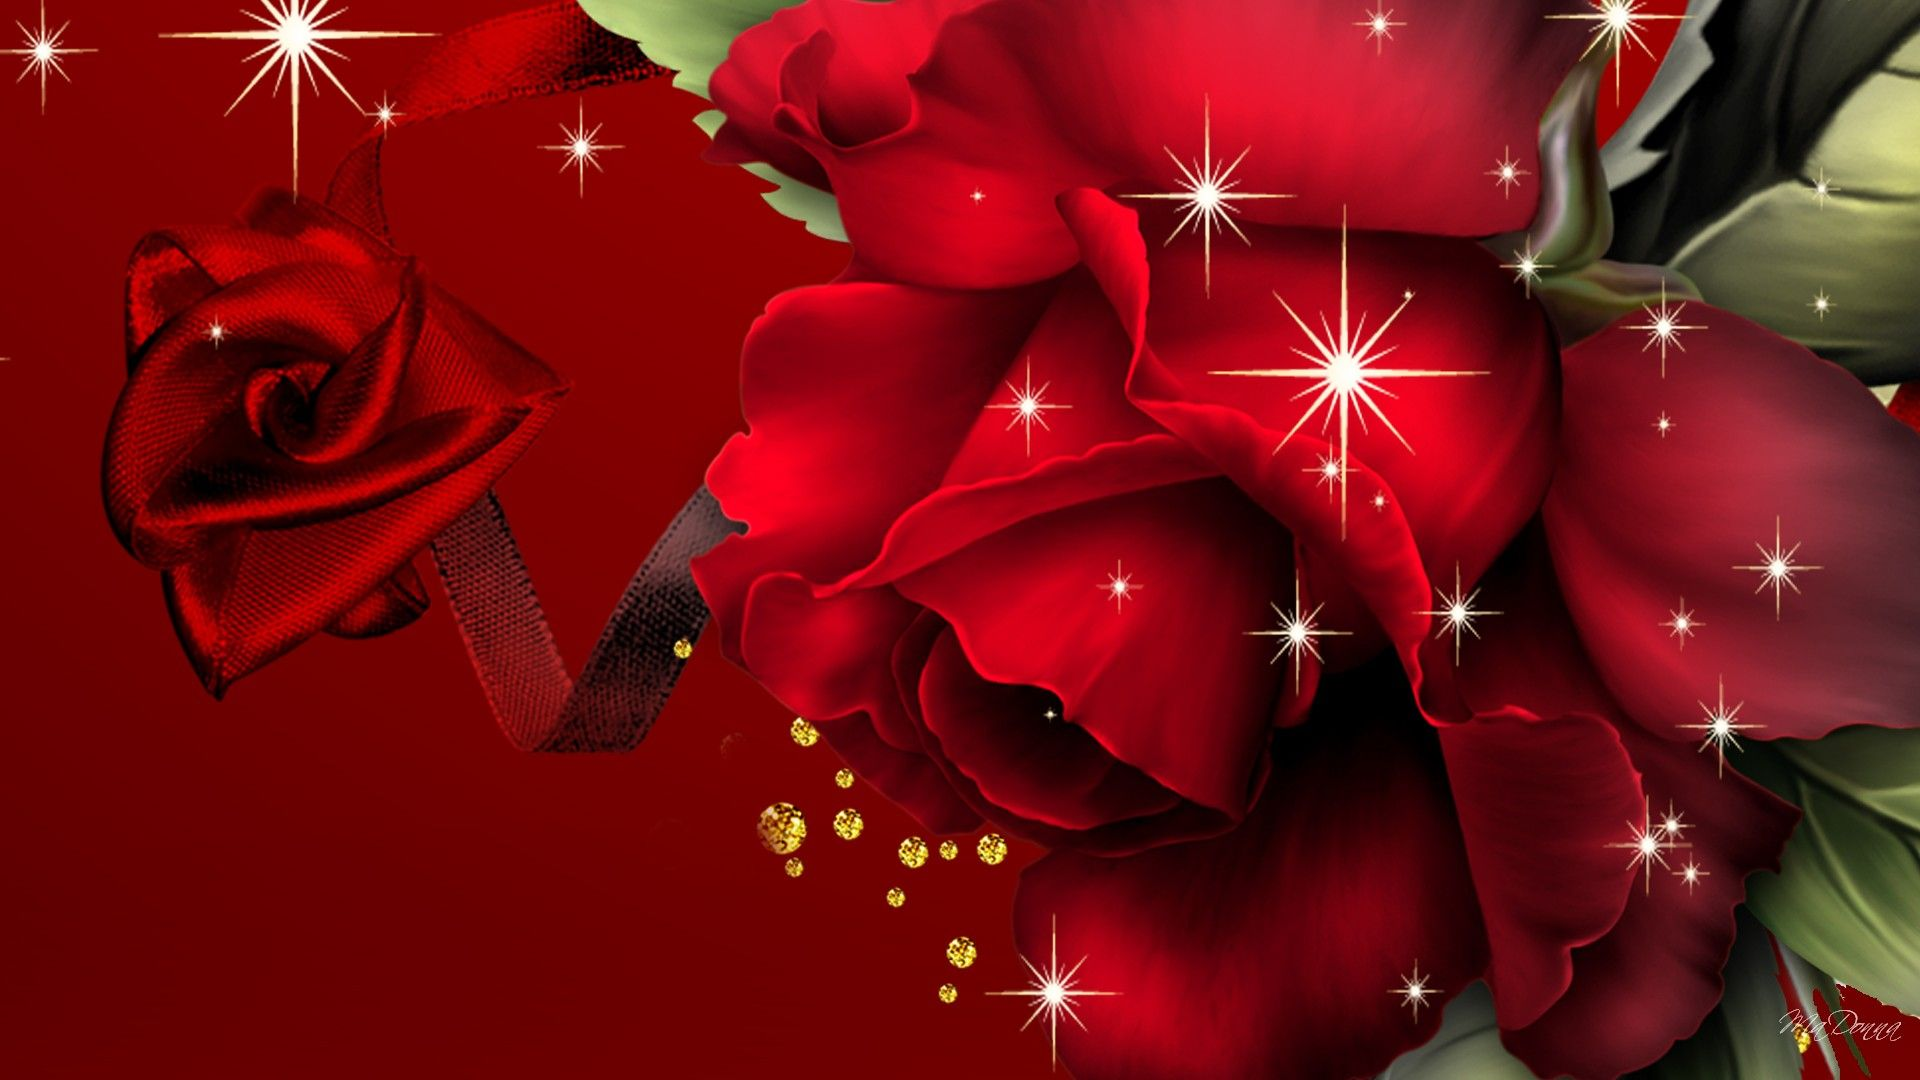 Hd wallpaper rose - Red Roses Wallpaper Backgrounds Rose Backgrounds Download Free Hd Wallpapers Pinterest Wallpaper Hd Wallpaper And Wallpaper Backgrounds